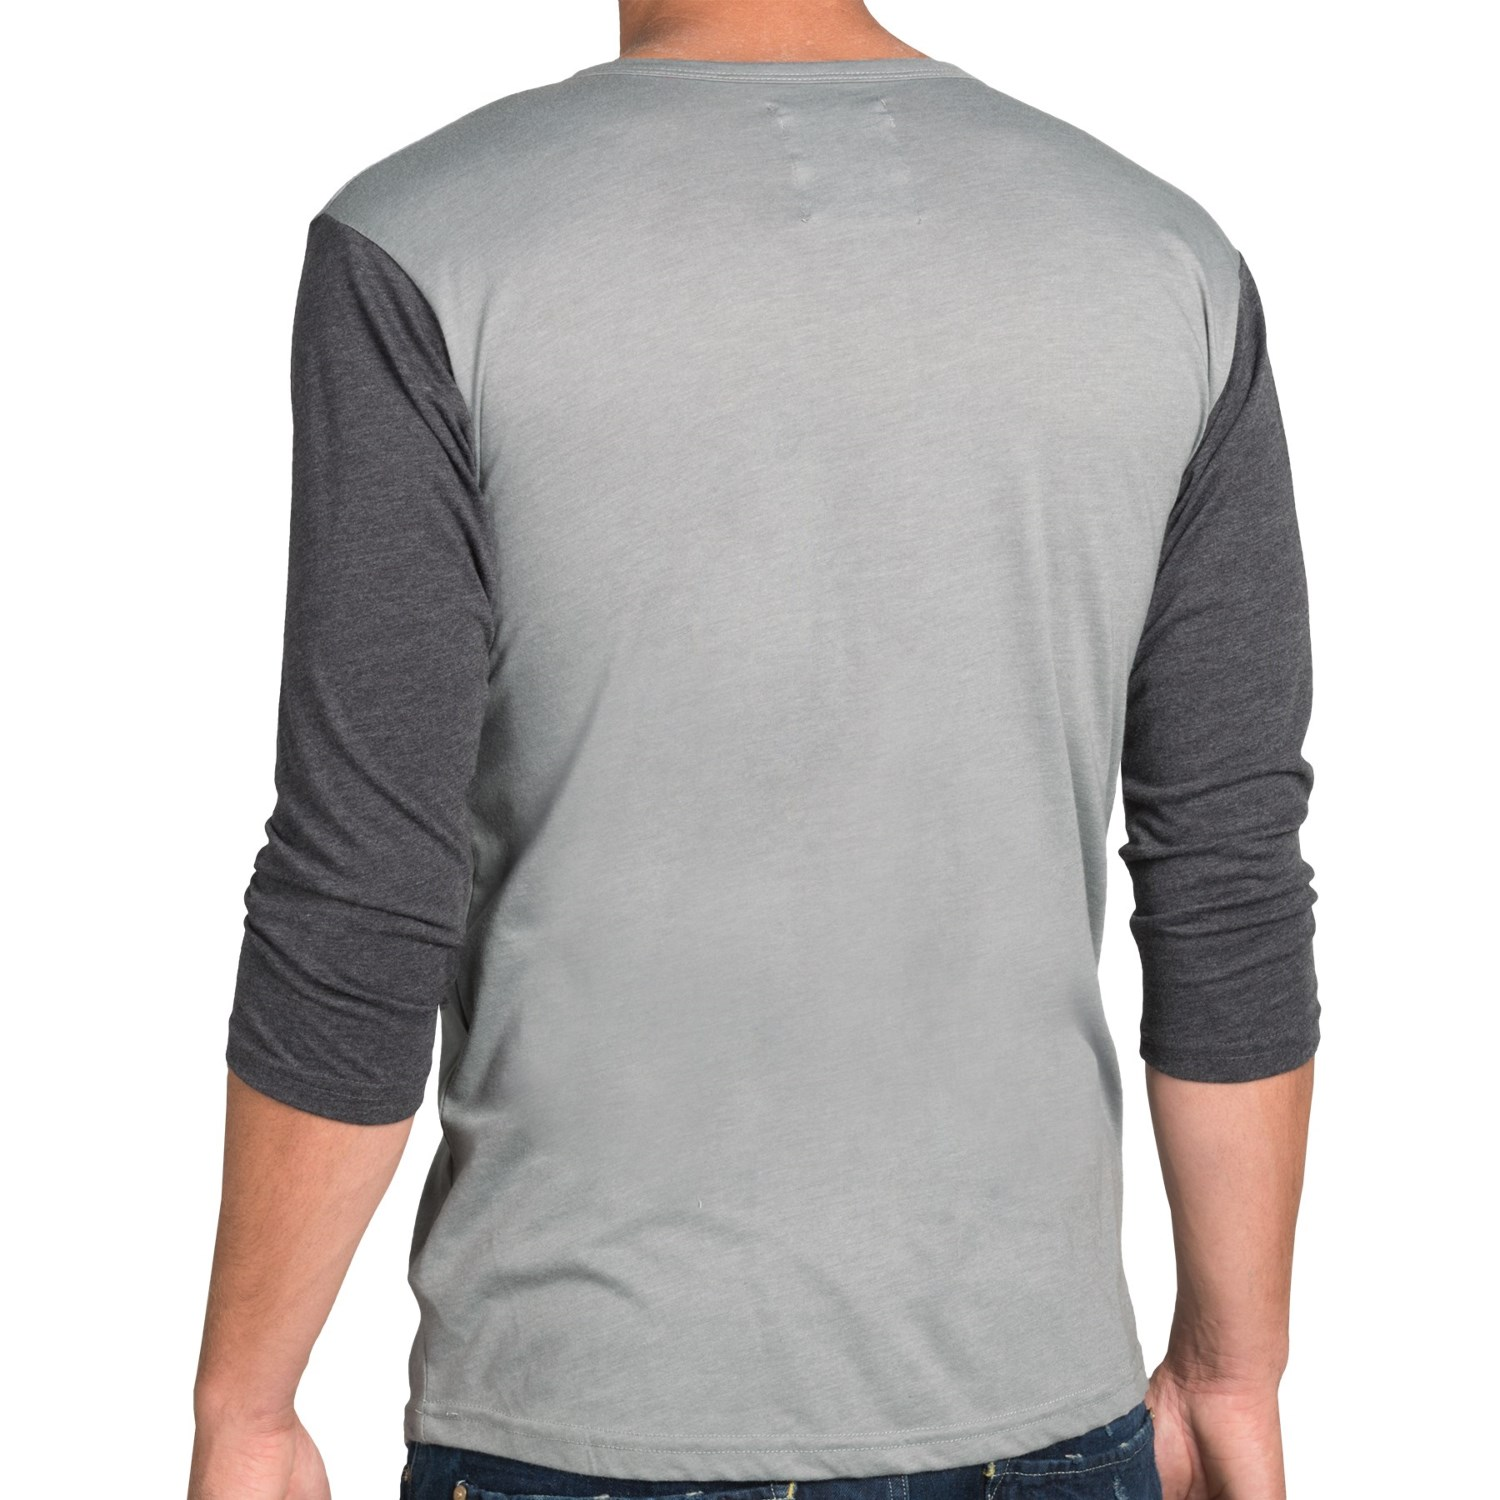 Get that classic baseball look on the diamond with baseball jerseys and crewneck shirts. Your clothing is the last thing you should be thinking about when you're inching off first. Find men's basketball apparel, shirts and jackets that are air-light, soft-to-the-touch and allow for complete mobility.